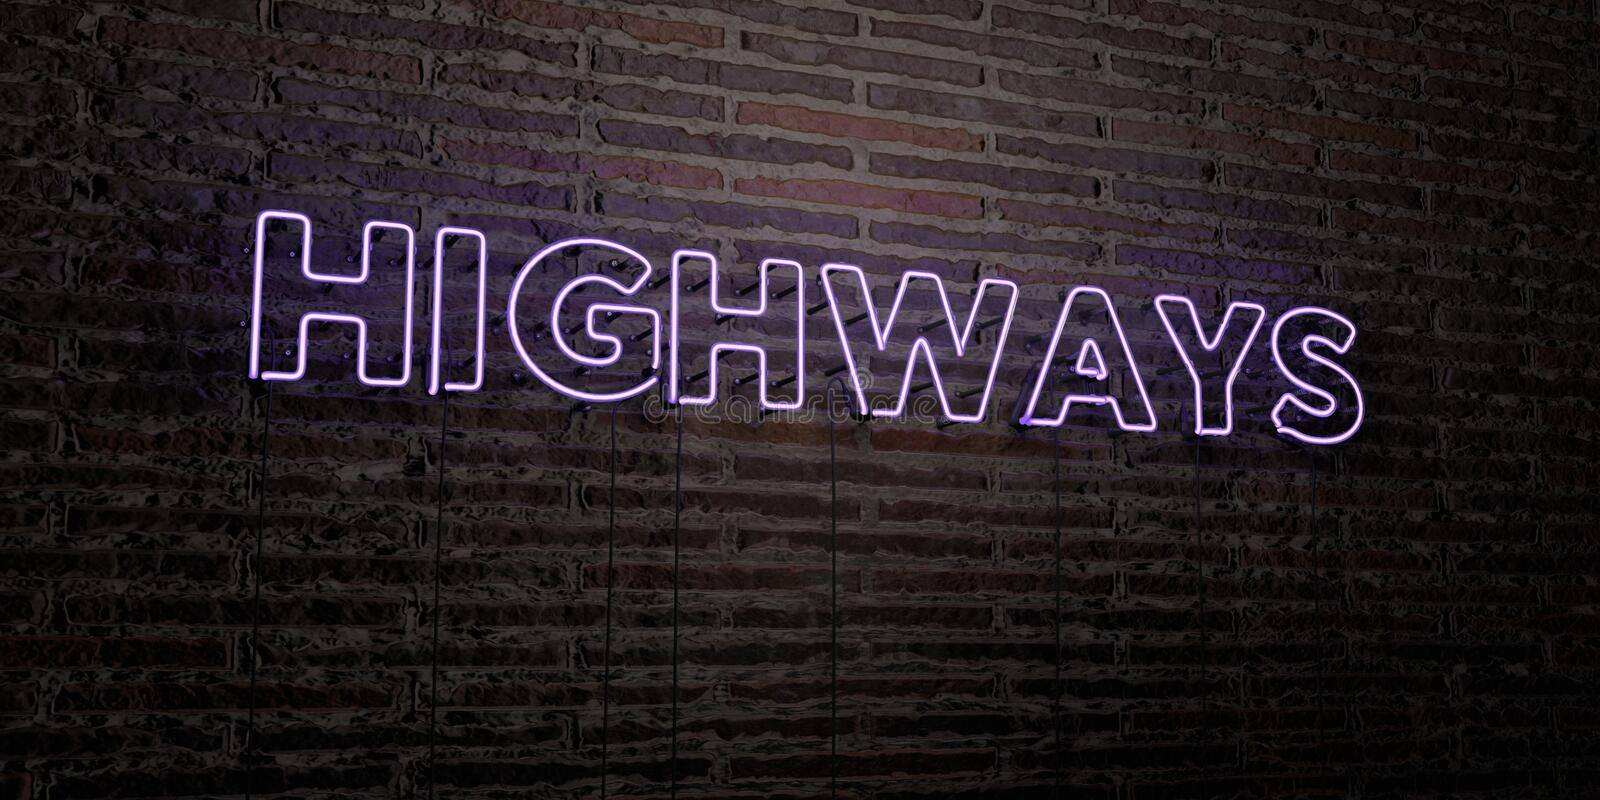 HIGHWAYS -Realistic Neon Sign on Brick Wall background - 3D rendered royalty free stock image. Can be used for online banner ads and direct mailers stock illustration